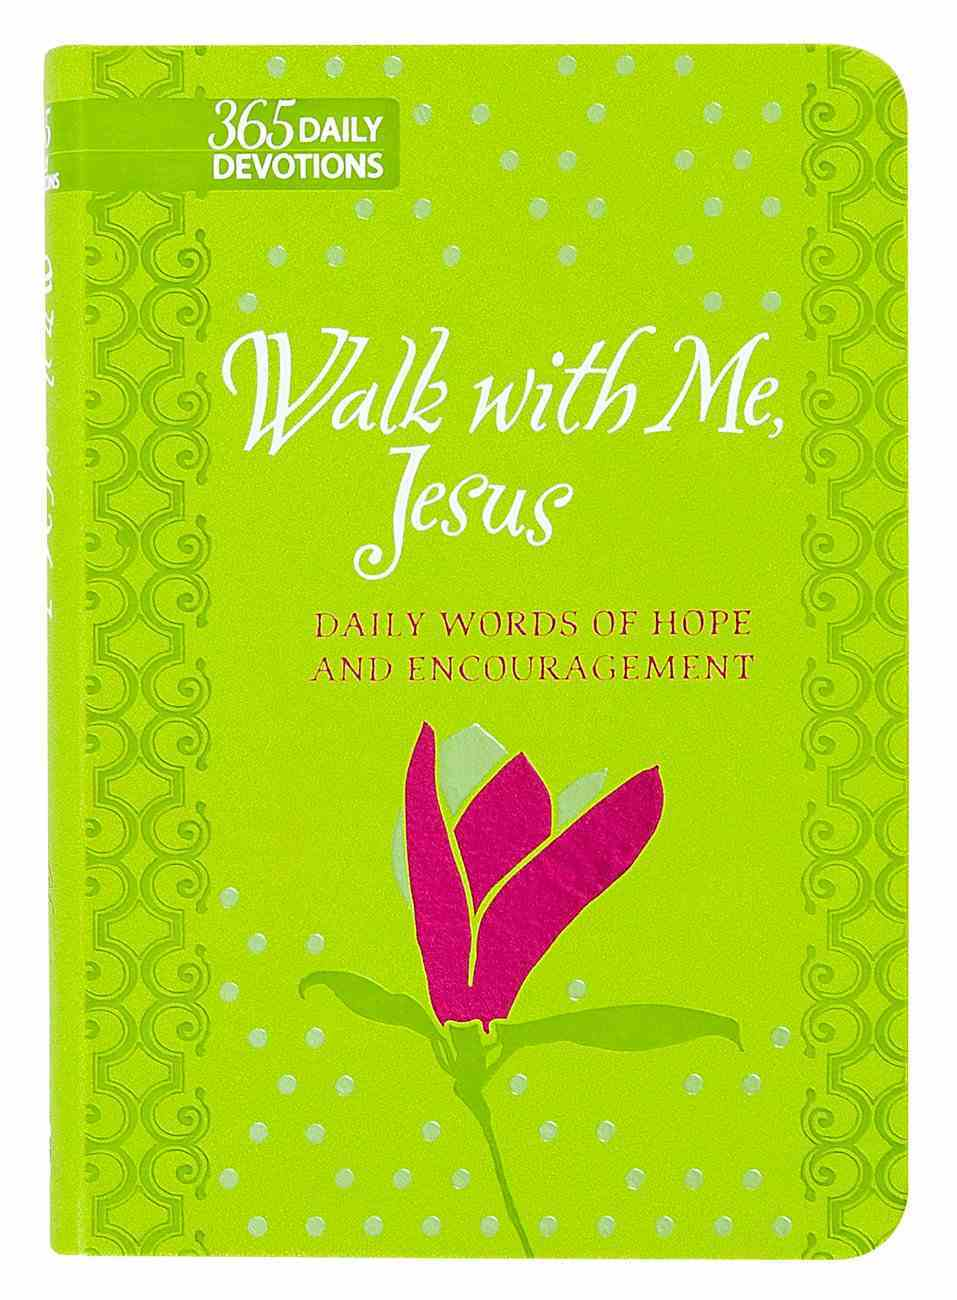 Walk With Me, Jesus: Daily Words of Hope and Encouragement (Gift Edition) Imitation Leather